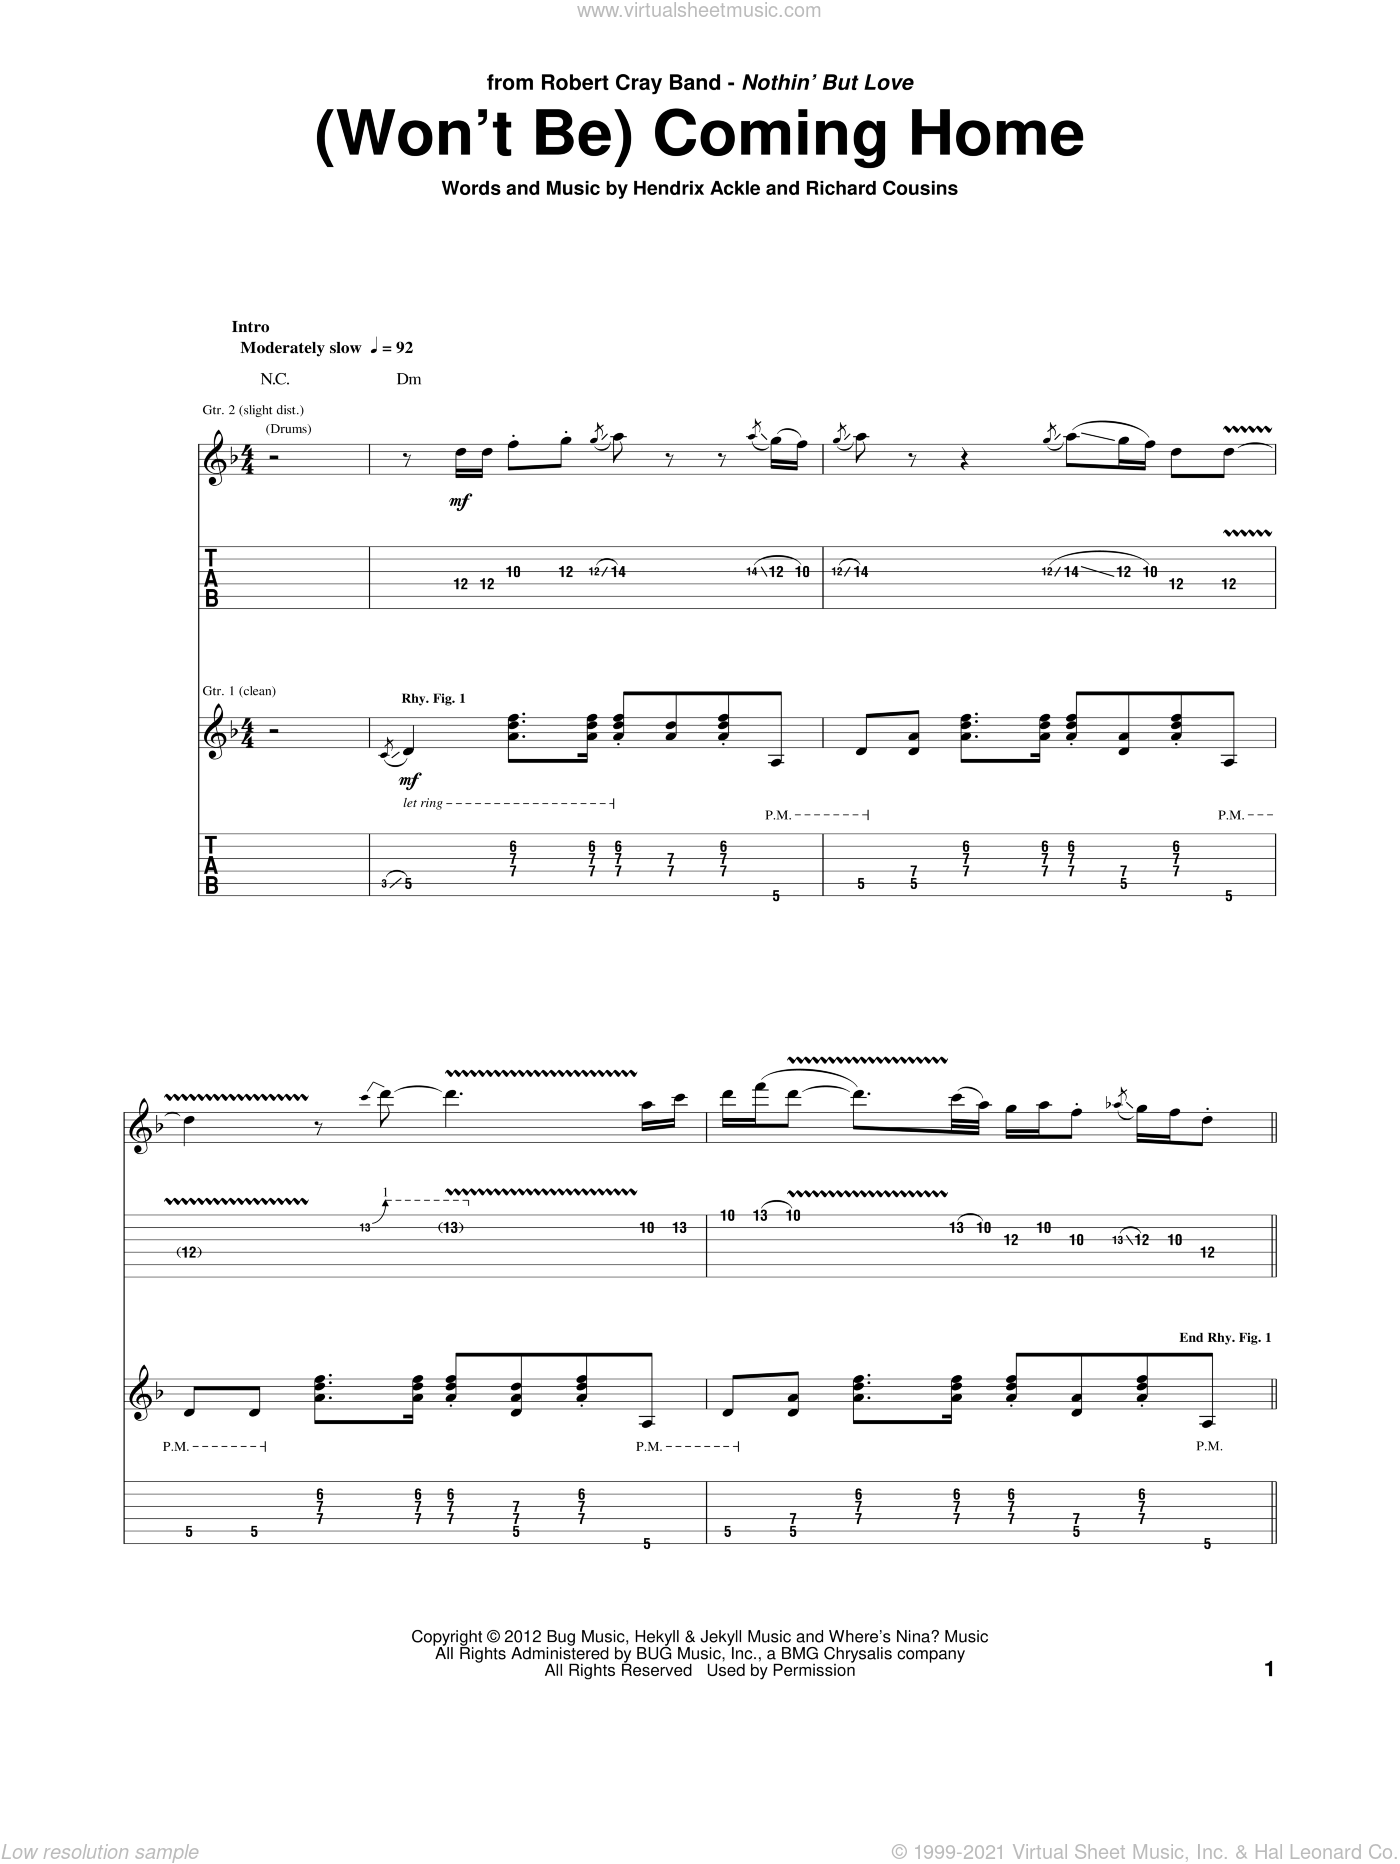 (Won't Be) Coming Home sheet music for guitar (tablature) by Robert Cray, Hendrix Ackle and Richard Cousins, intermediate skill level